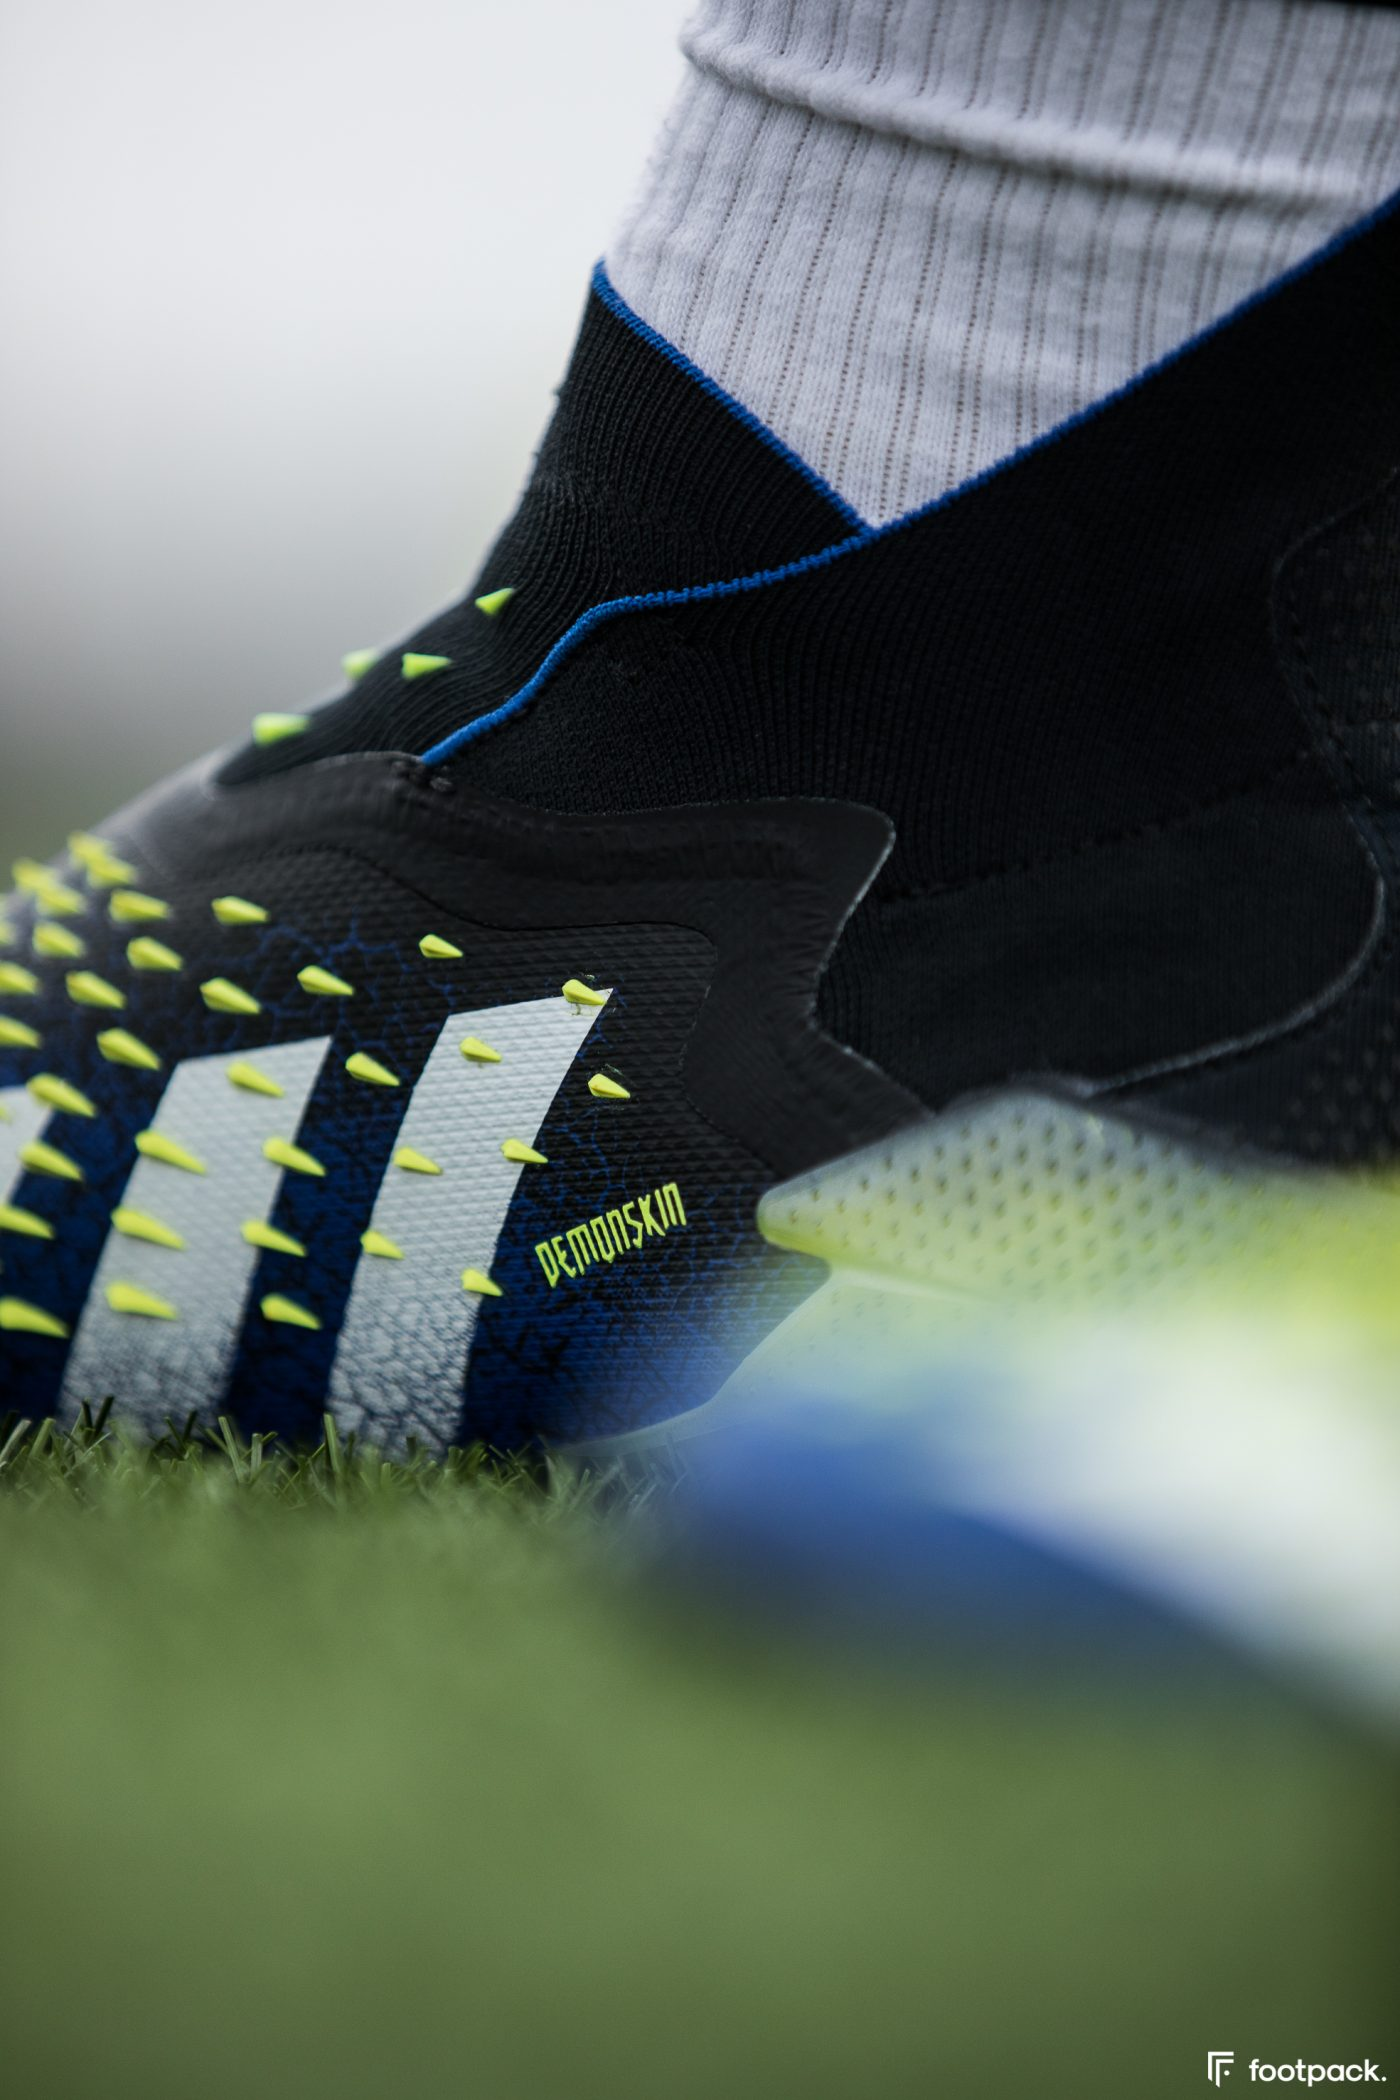 test-adidas-predator-freak+-footpack-37